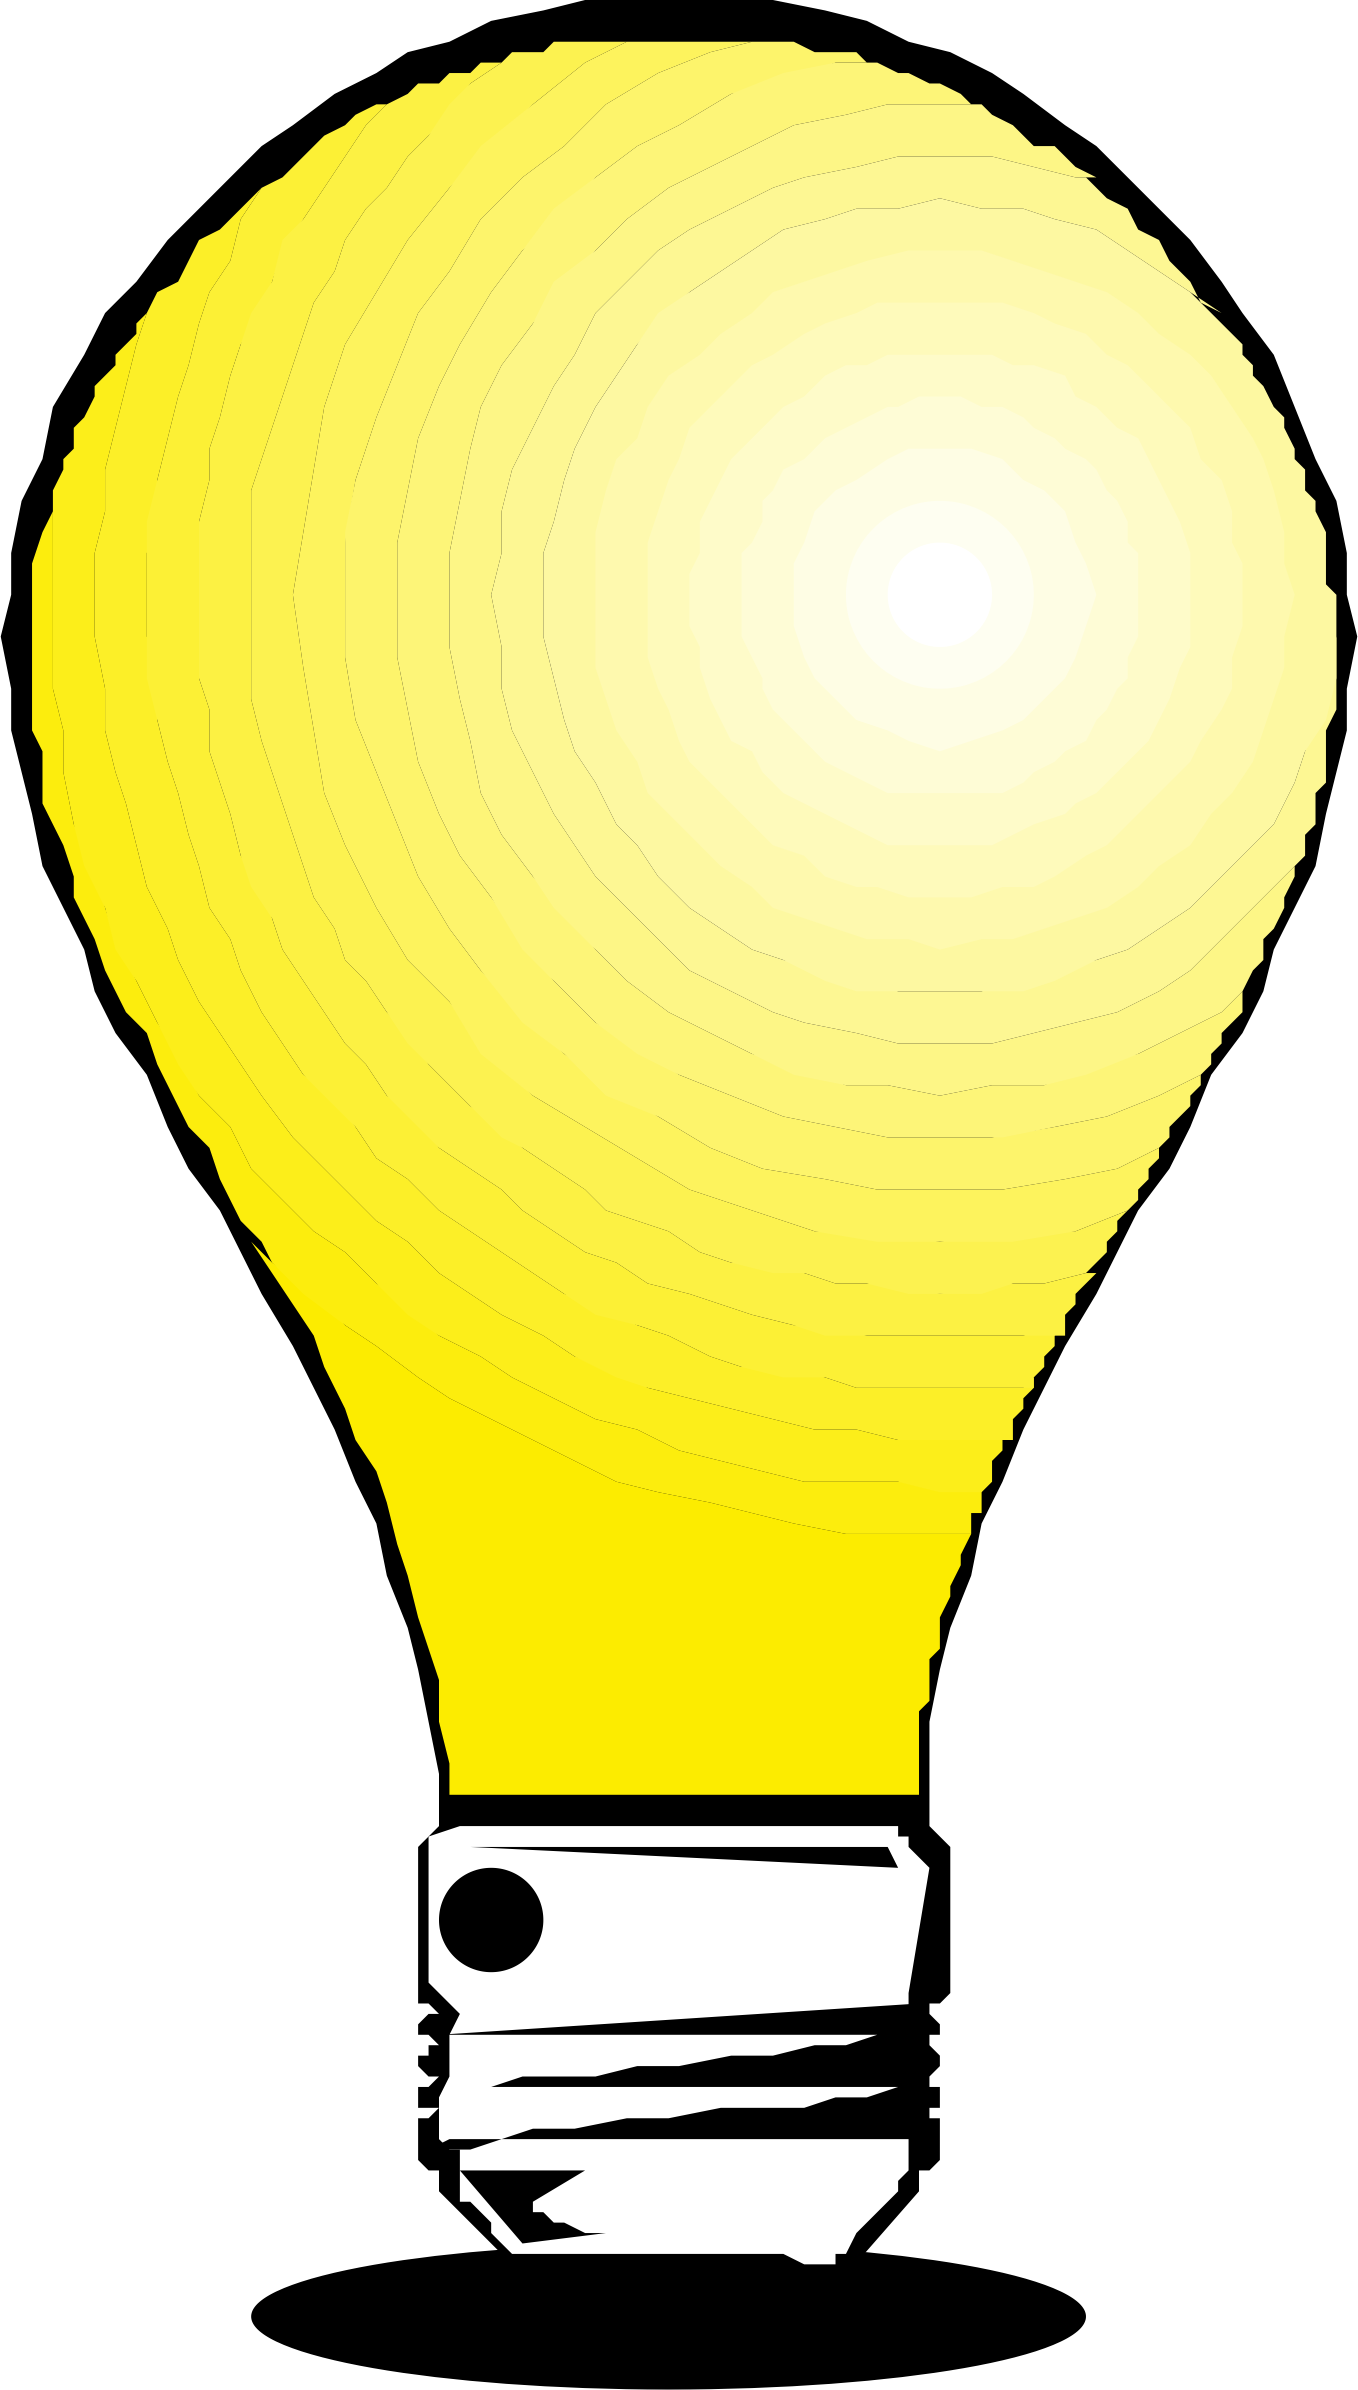 Light bulb by liftarn